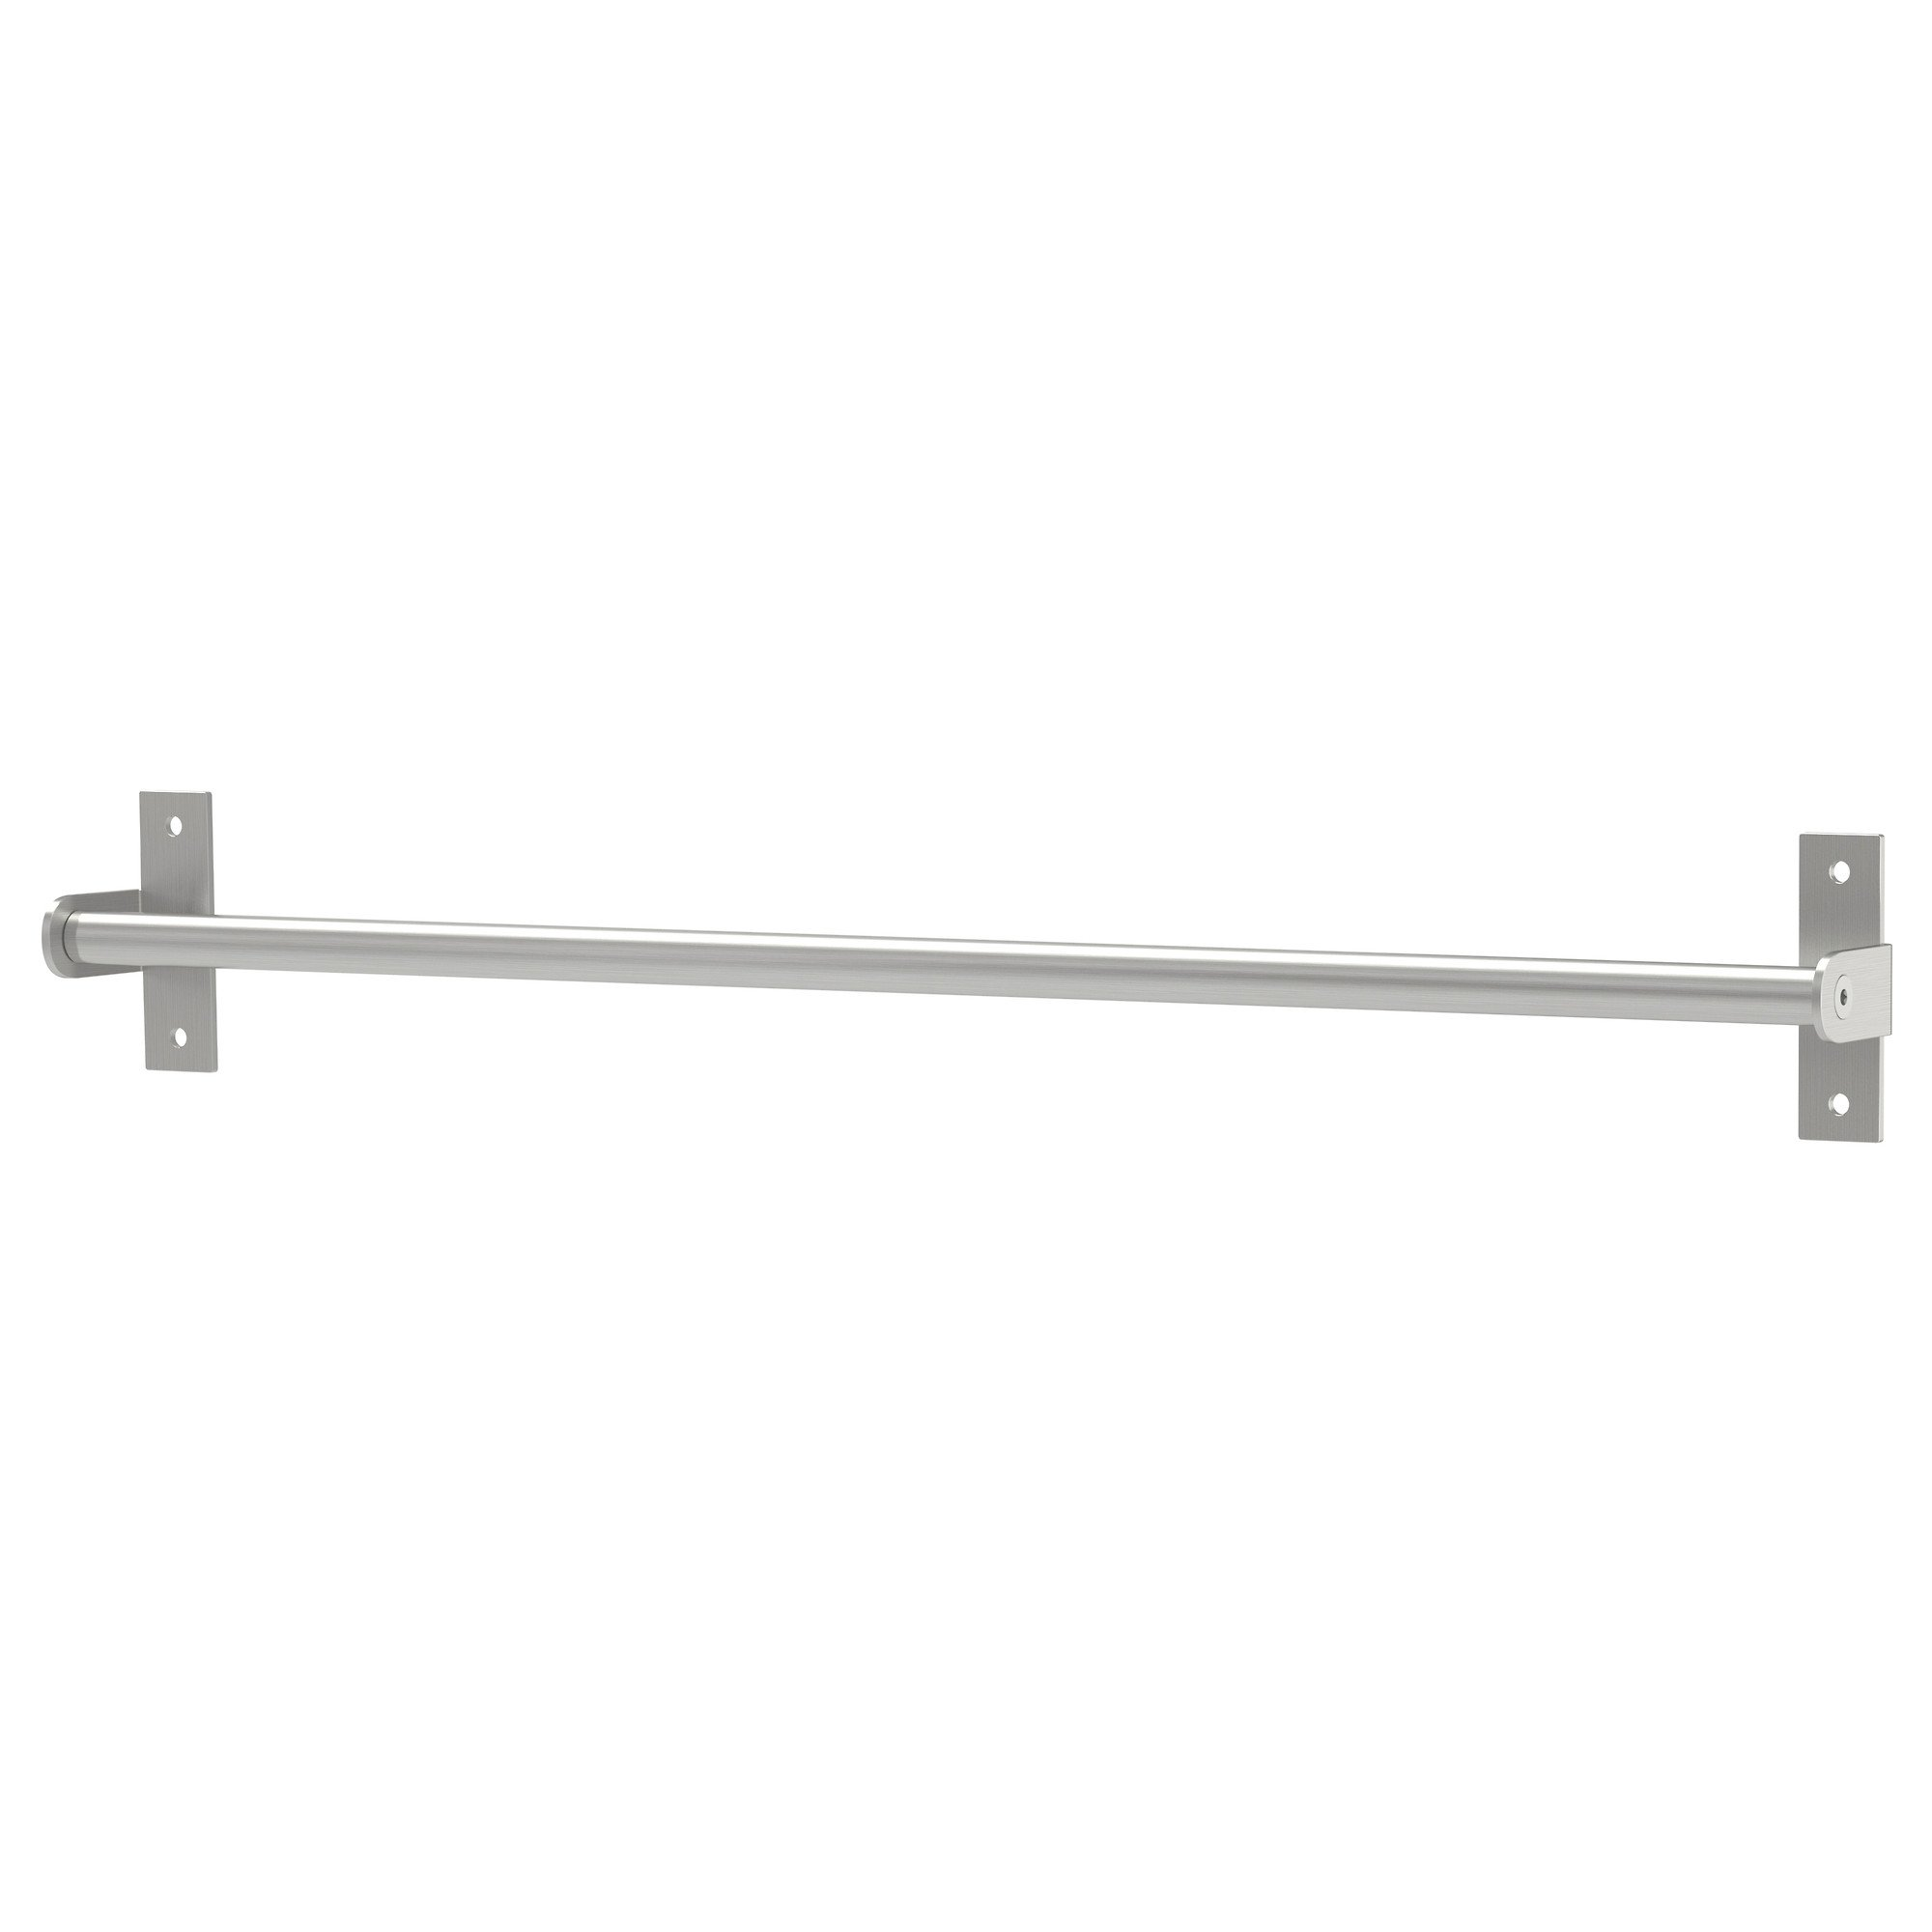 Ikea Glasregal Grundtal Buy Ikea Kallax Steel Rail Hardware With Casters For Home Or